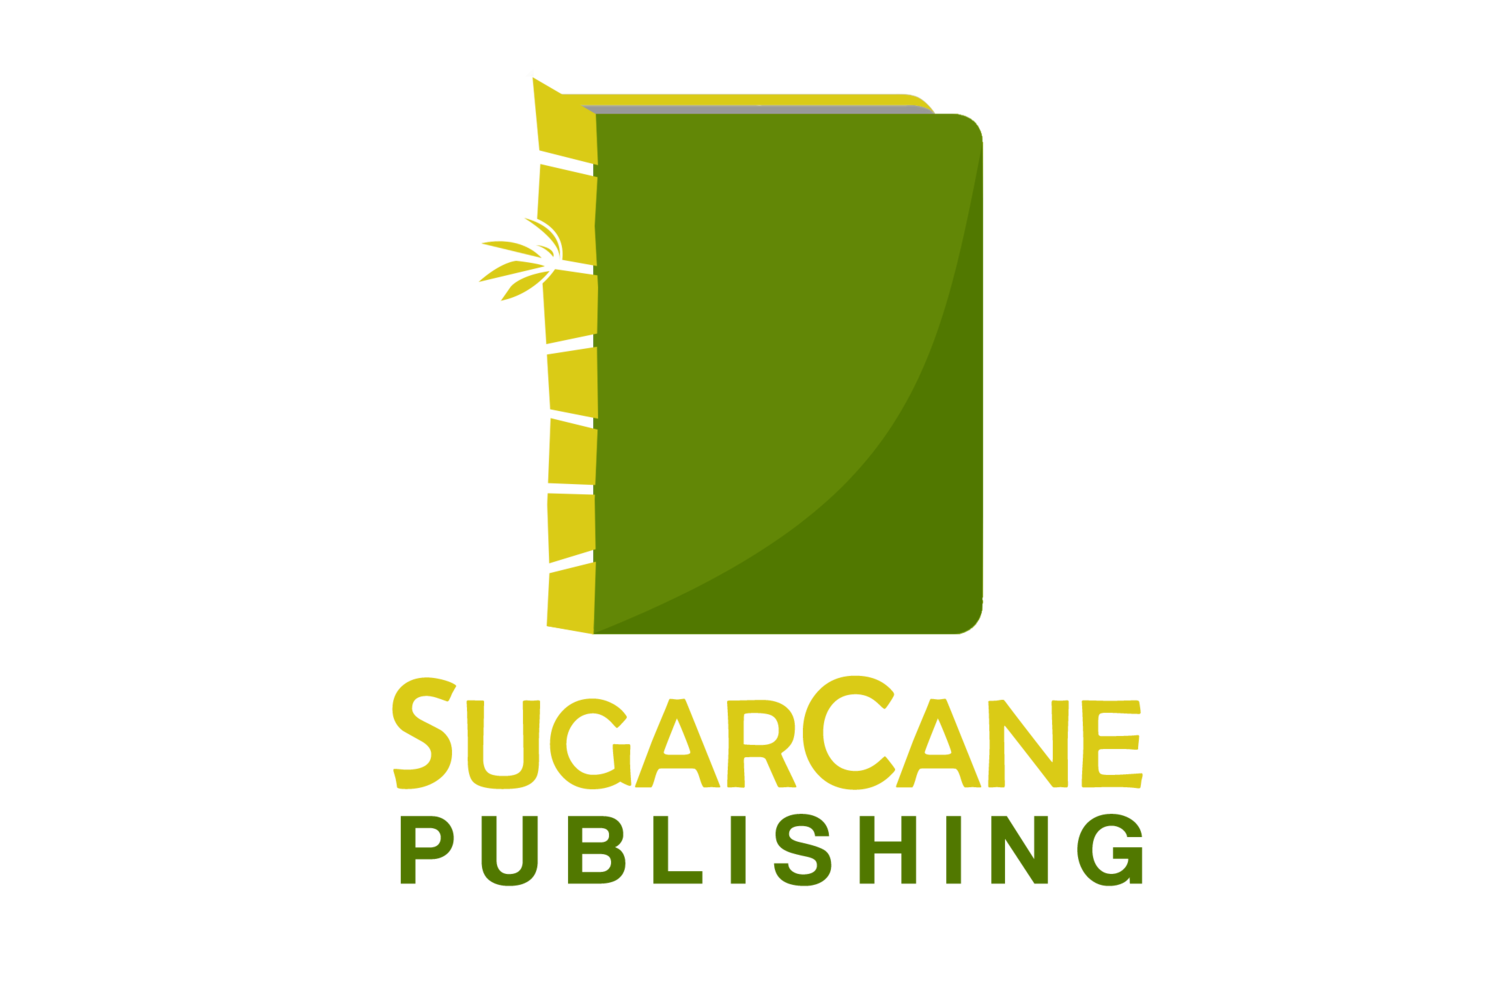 SugarCane Publishing